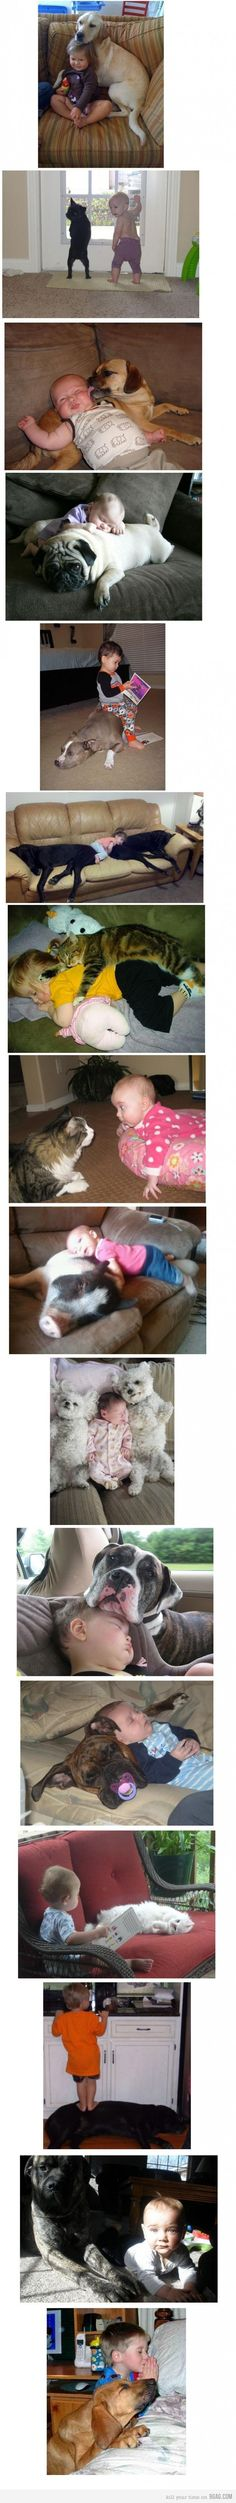 Every kid should have a pet !